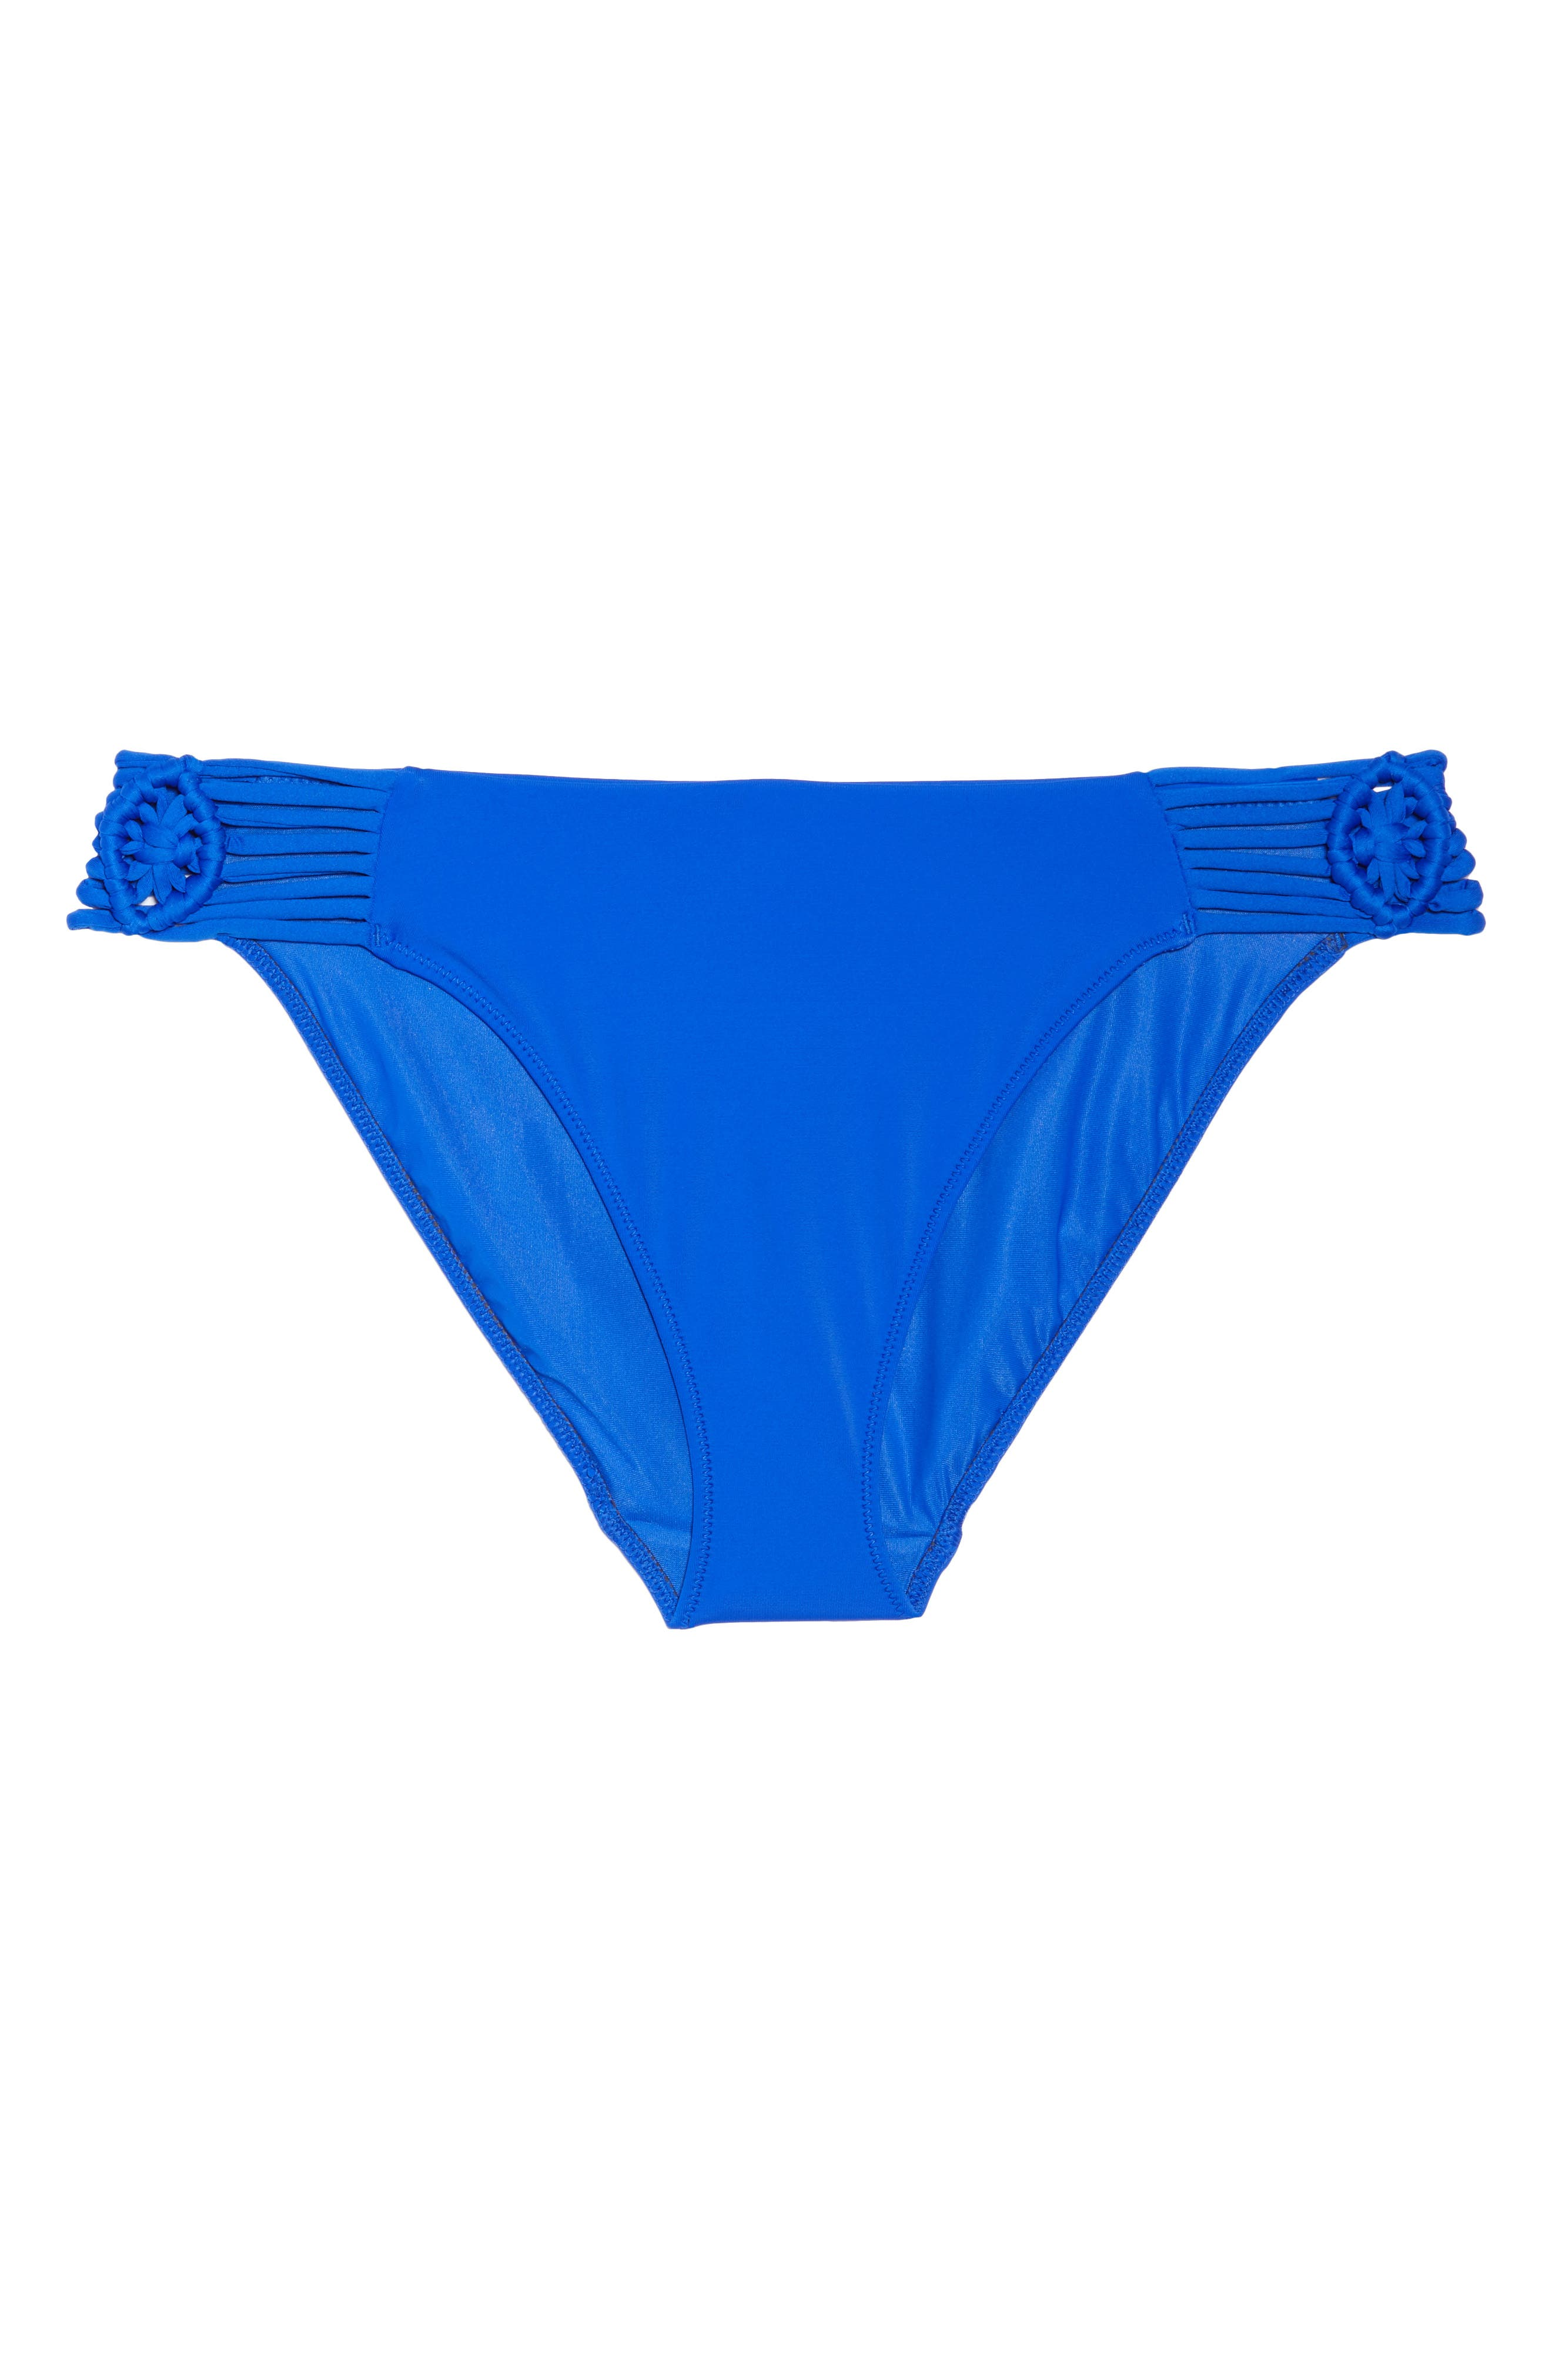 Macramé Bikini Bottoms,                             Alternate thumbnail 9, color,                             Cobalt